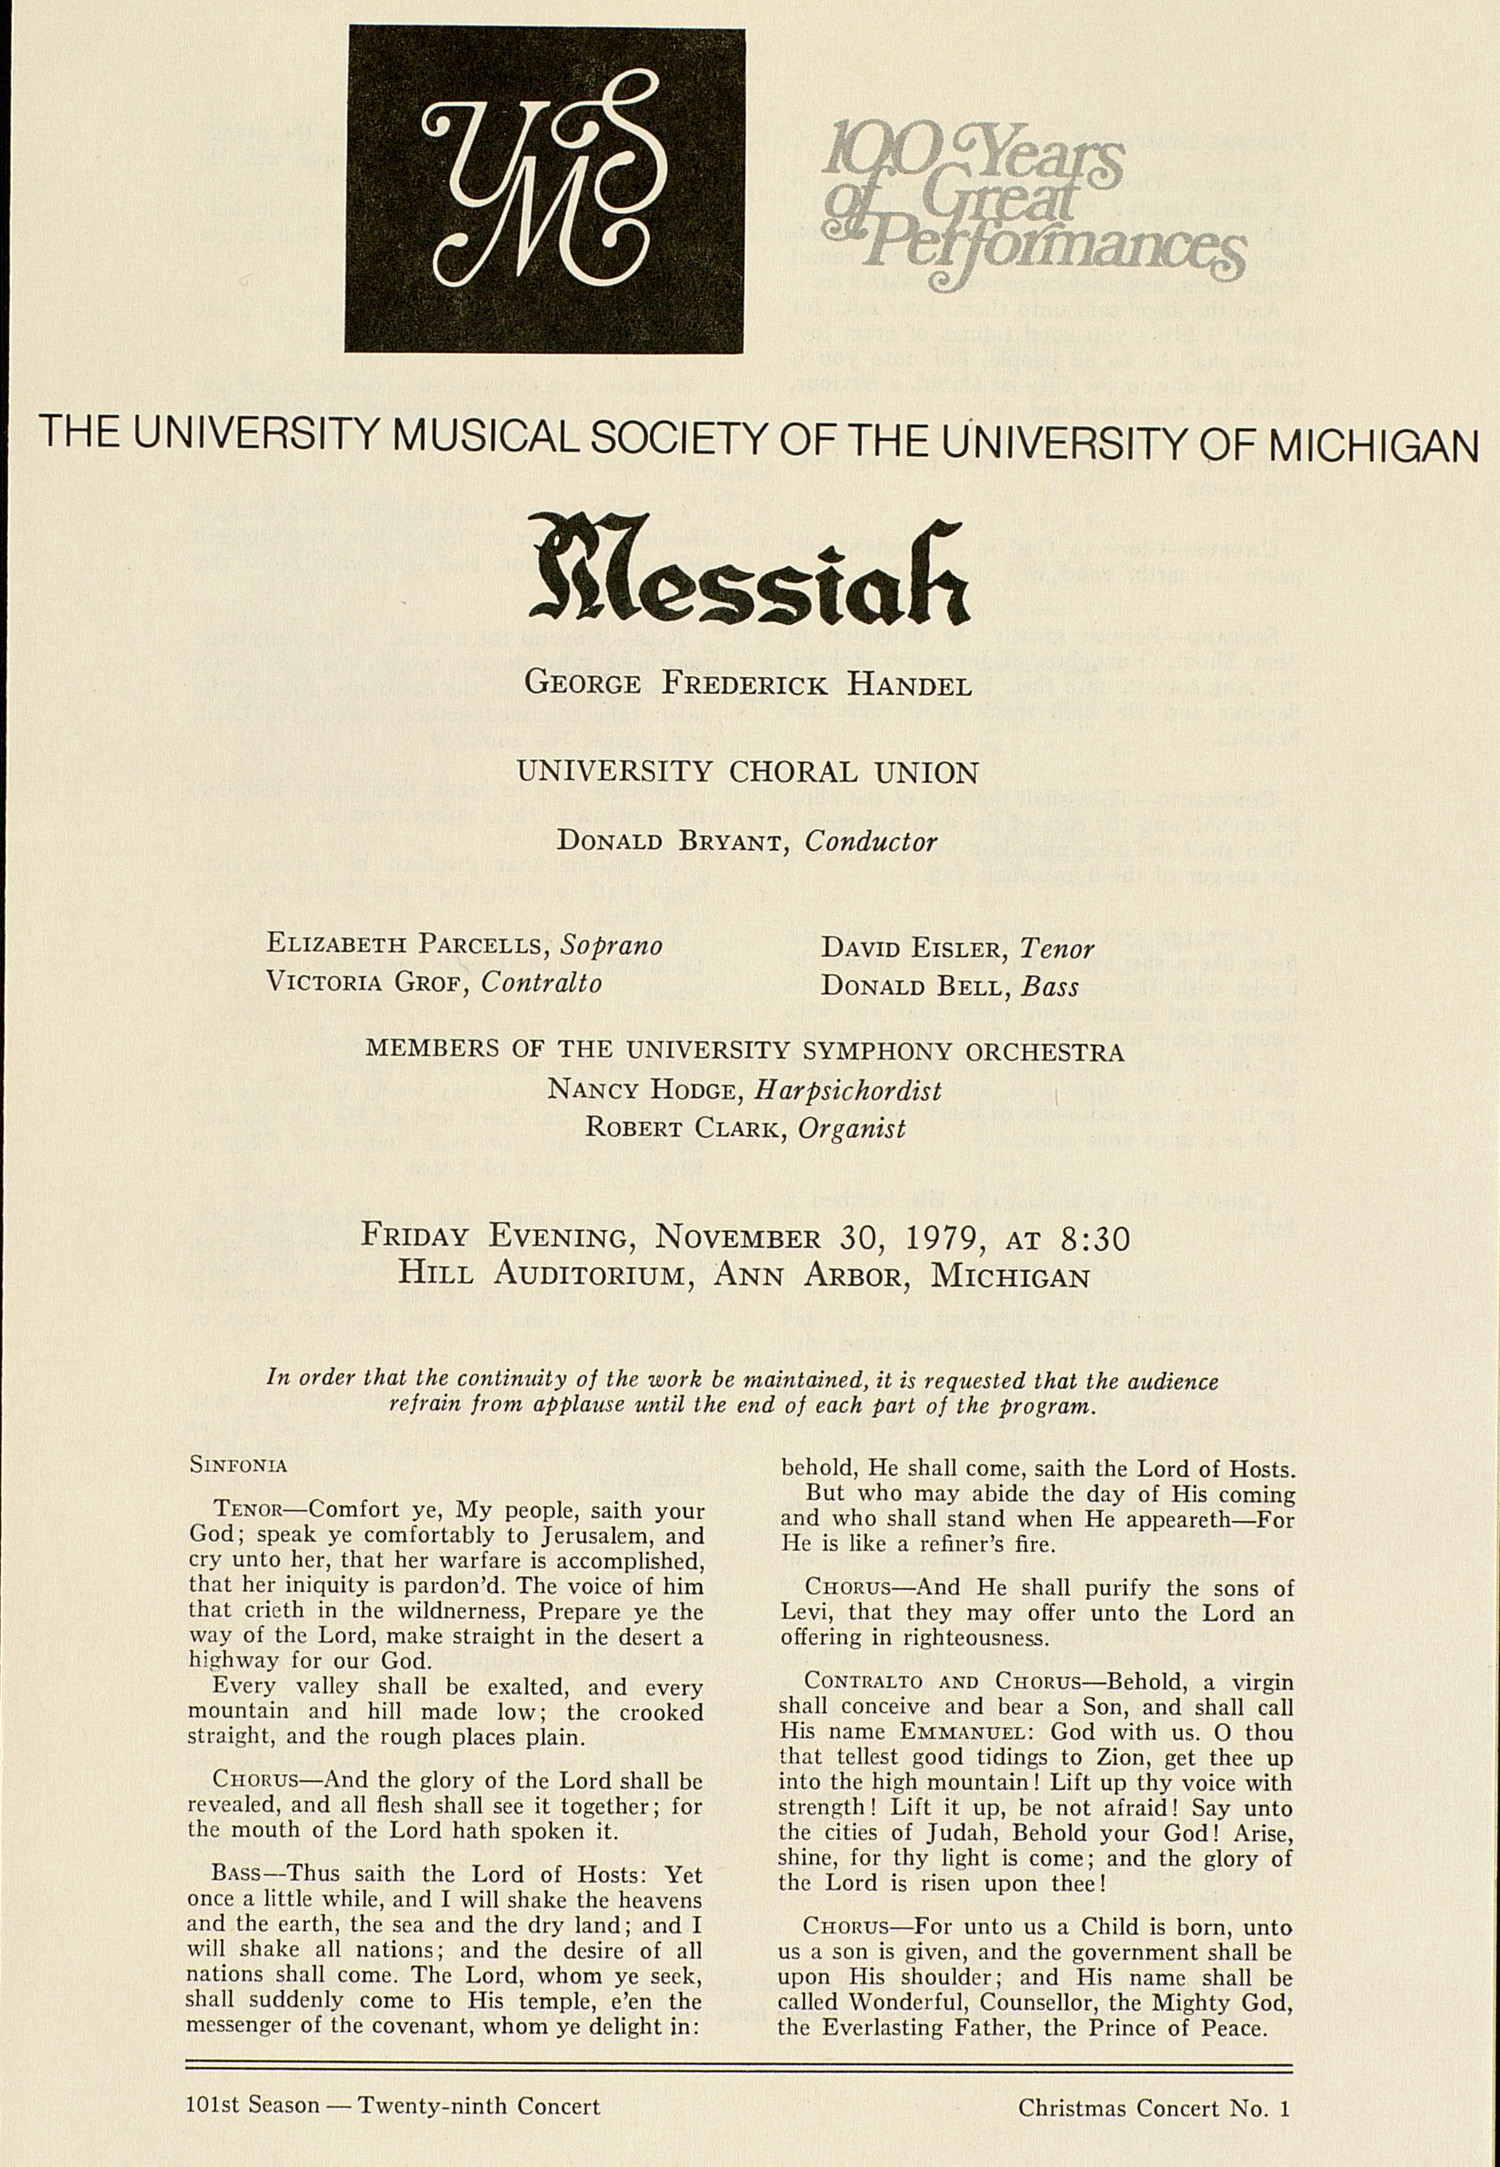 UMS Concert Program, November 30, 1979: Messiah -- George Frederick Handel image